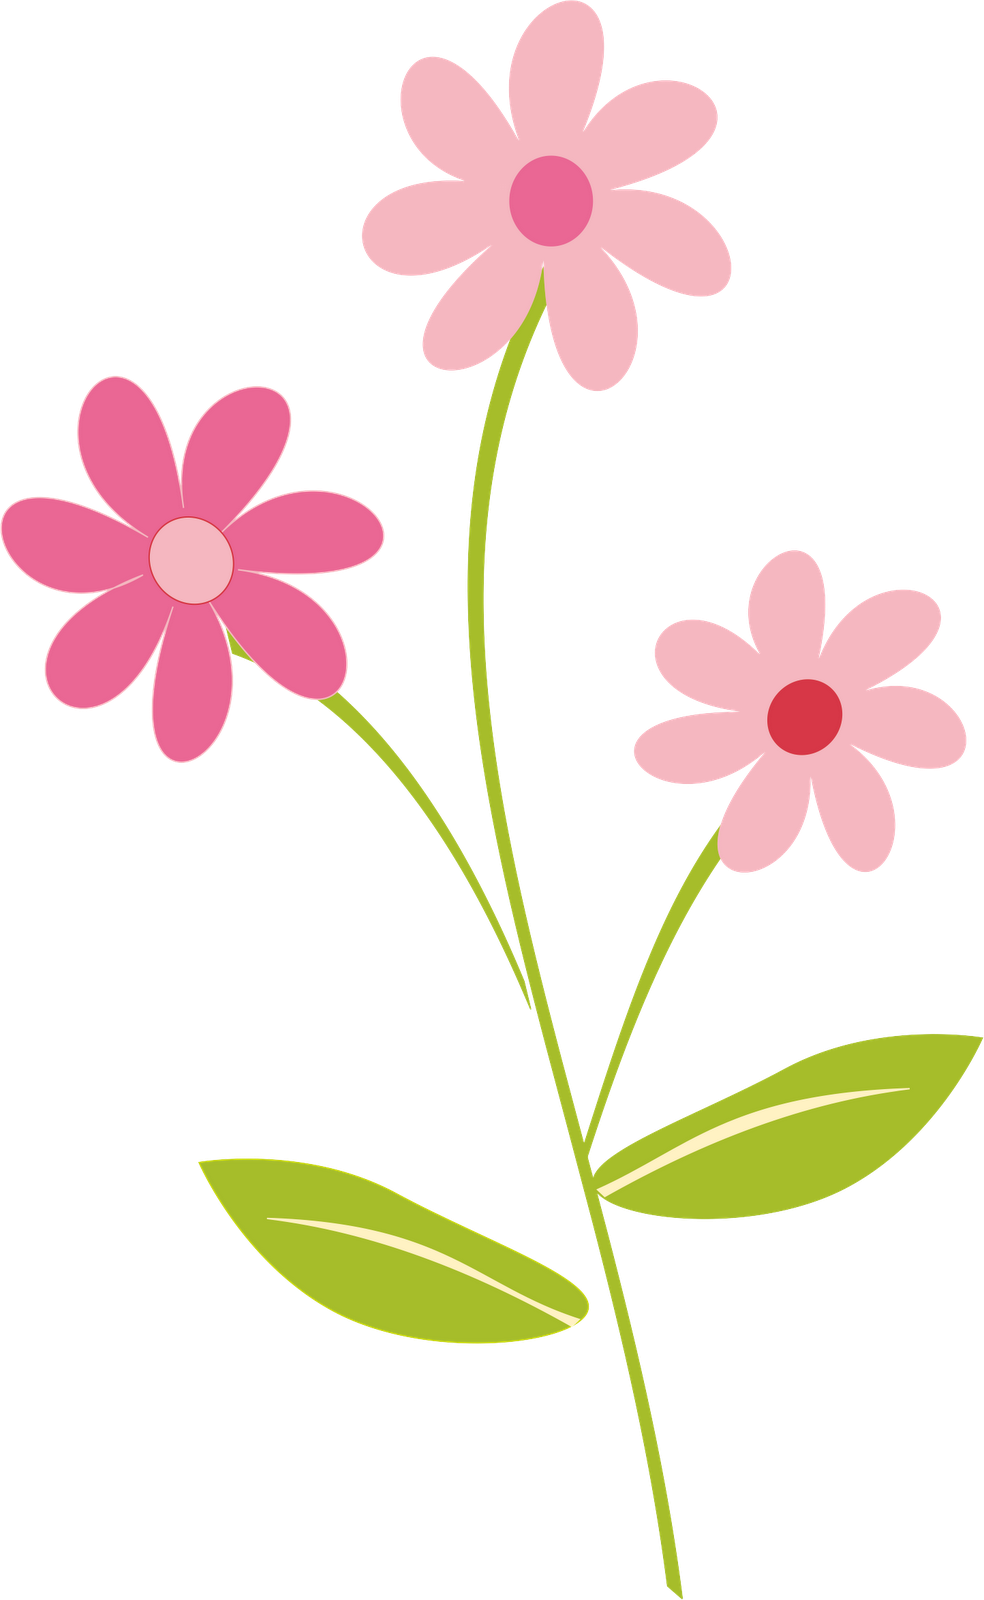 Flower clip art png. Pretty flowers drawing at